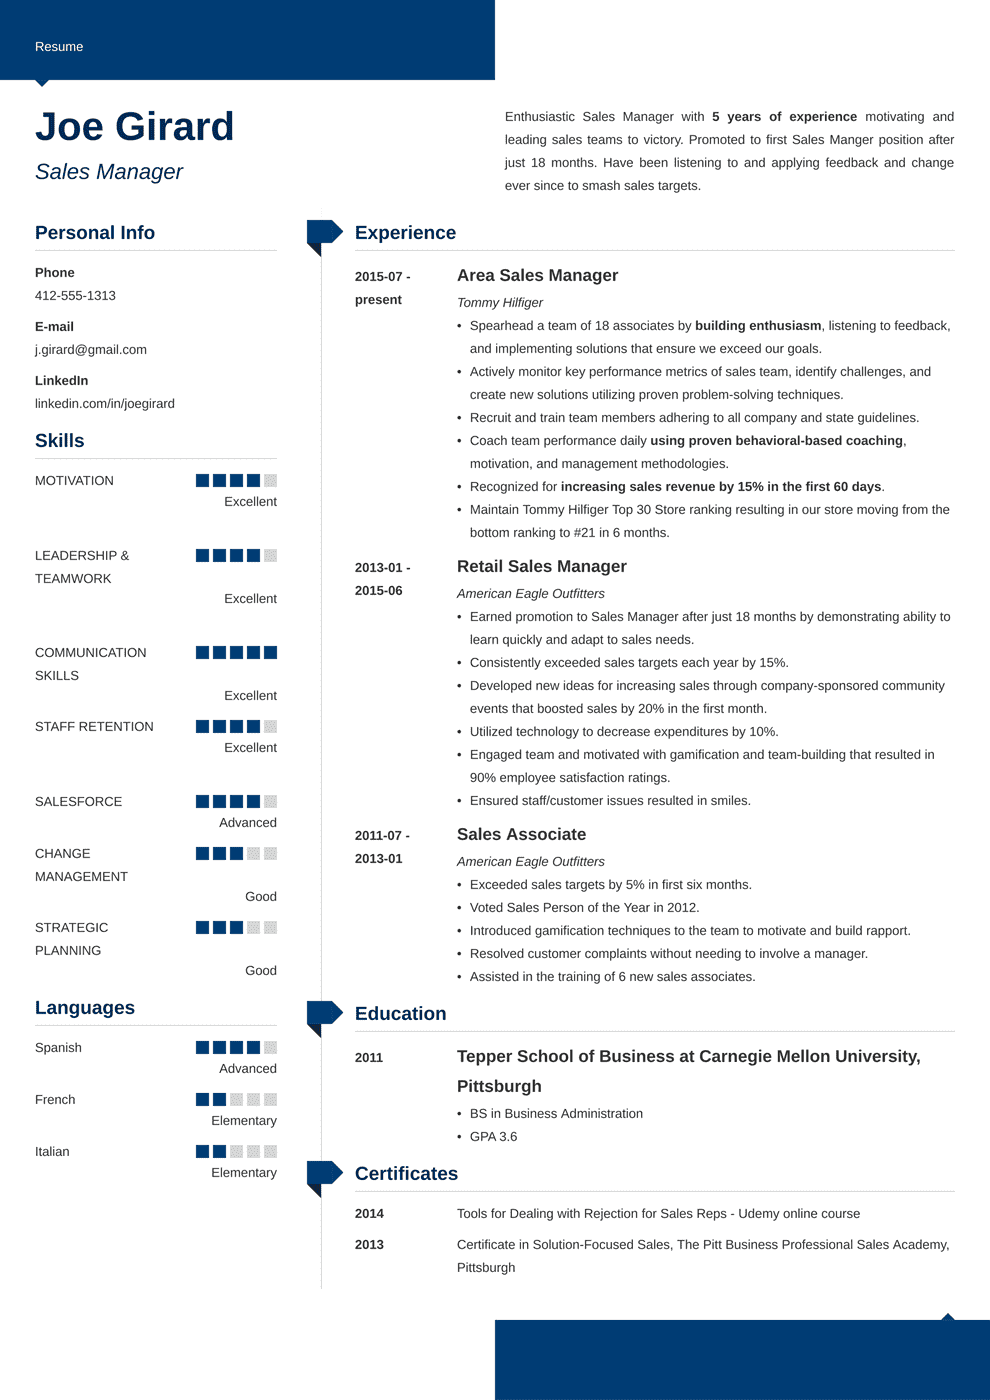 sales manager resume template modern in 2020 Resume